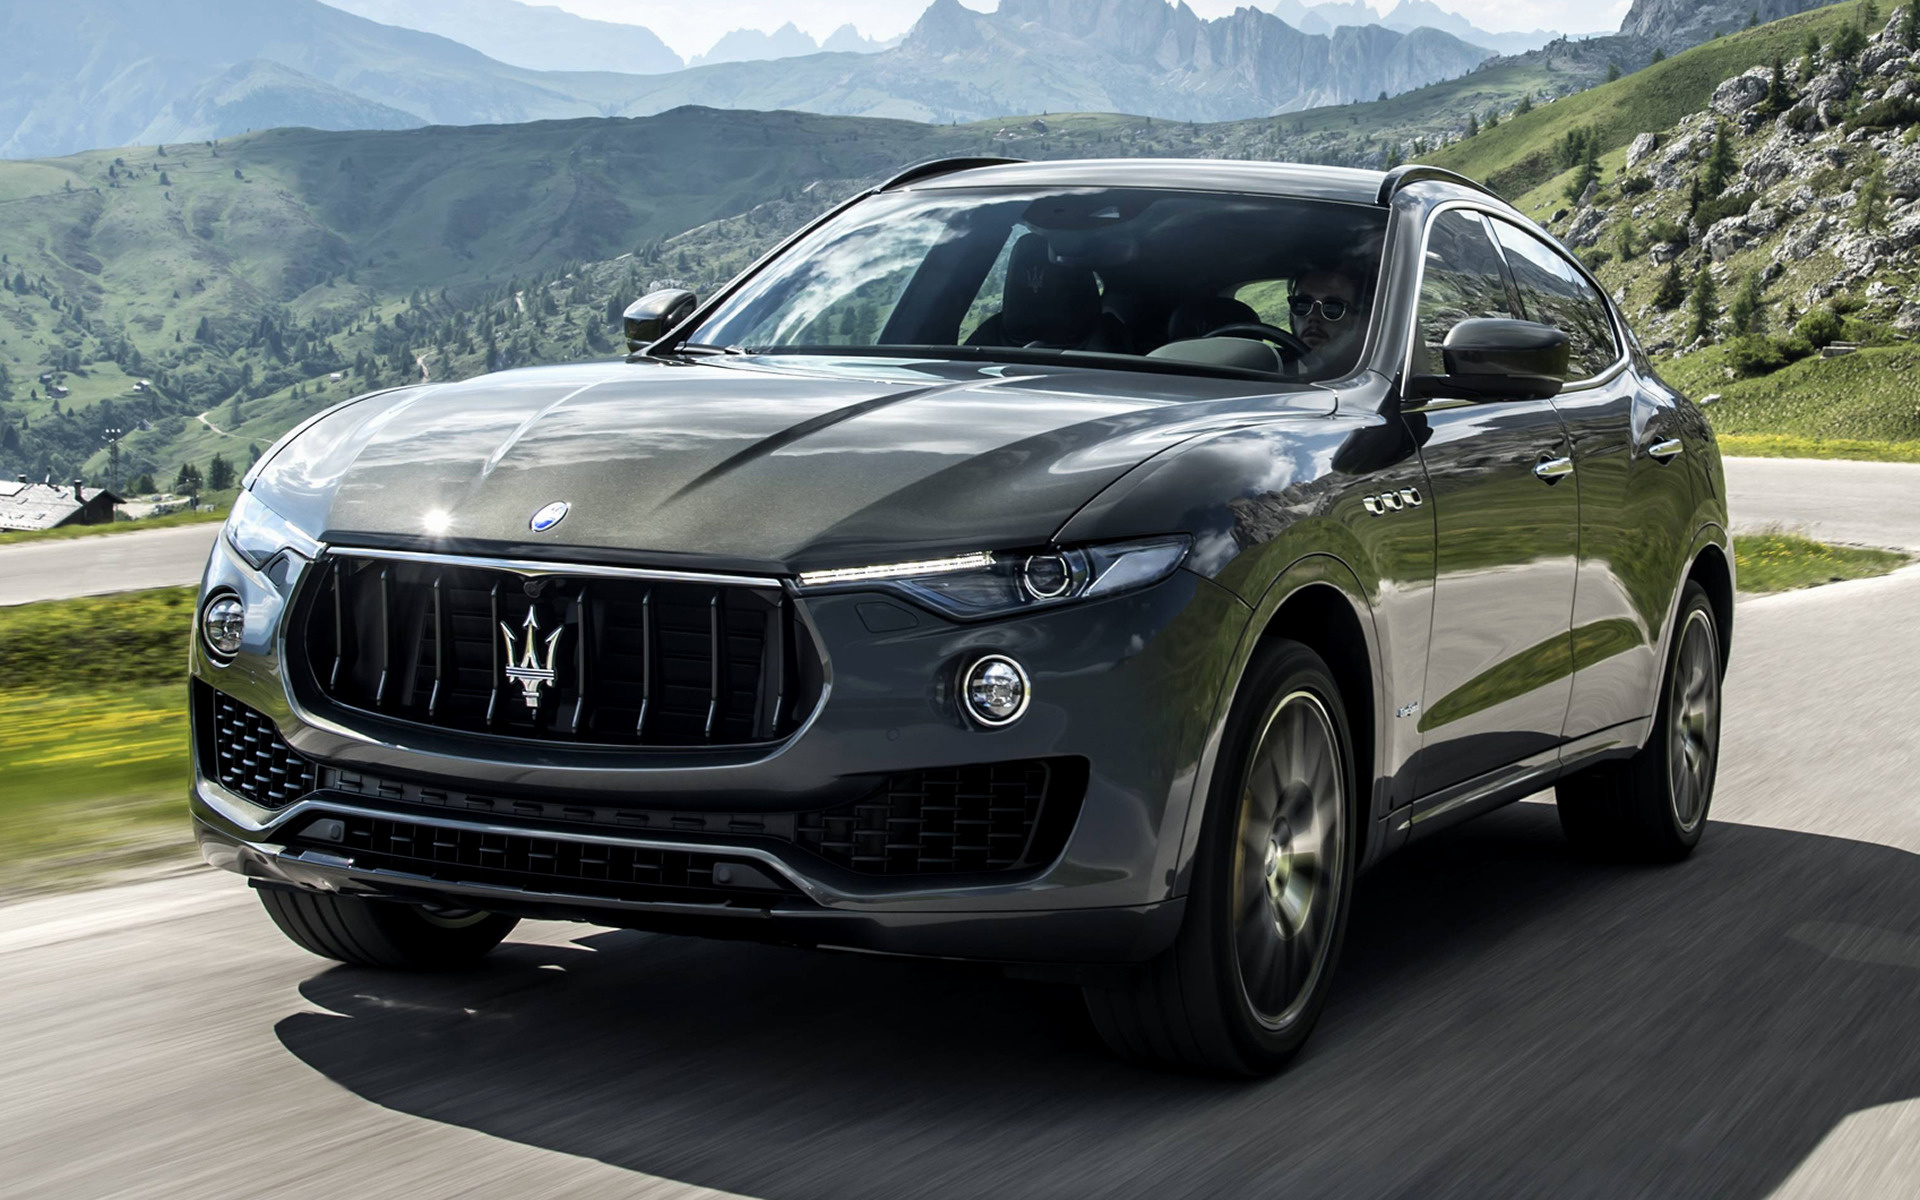 2017 Maserati Levante Gransport Wallpapers And Hd Images